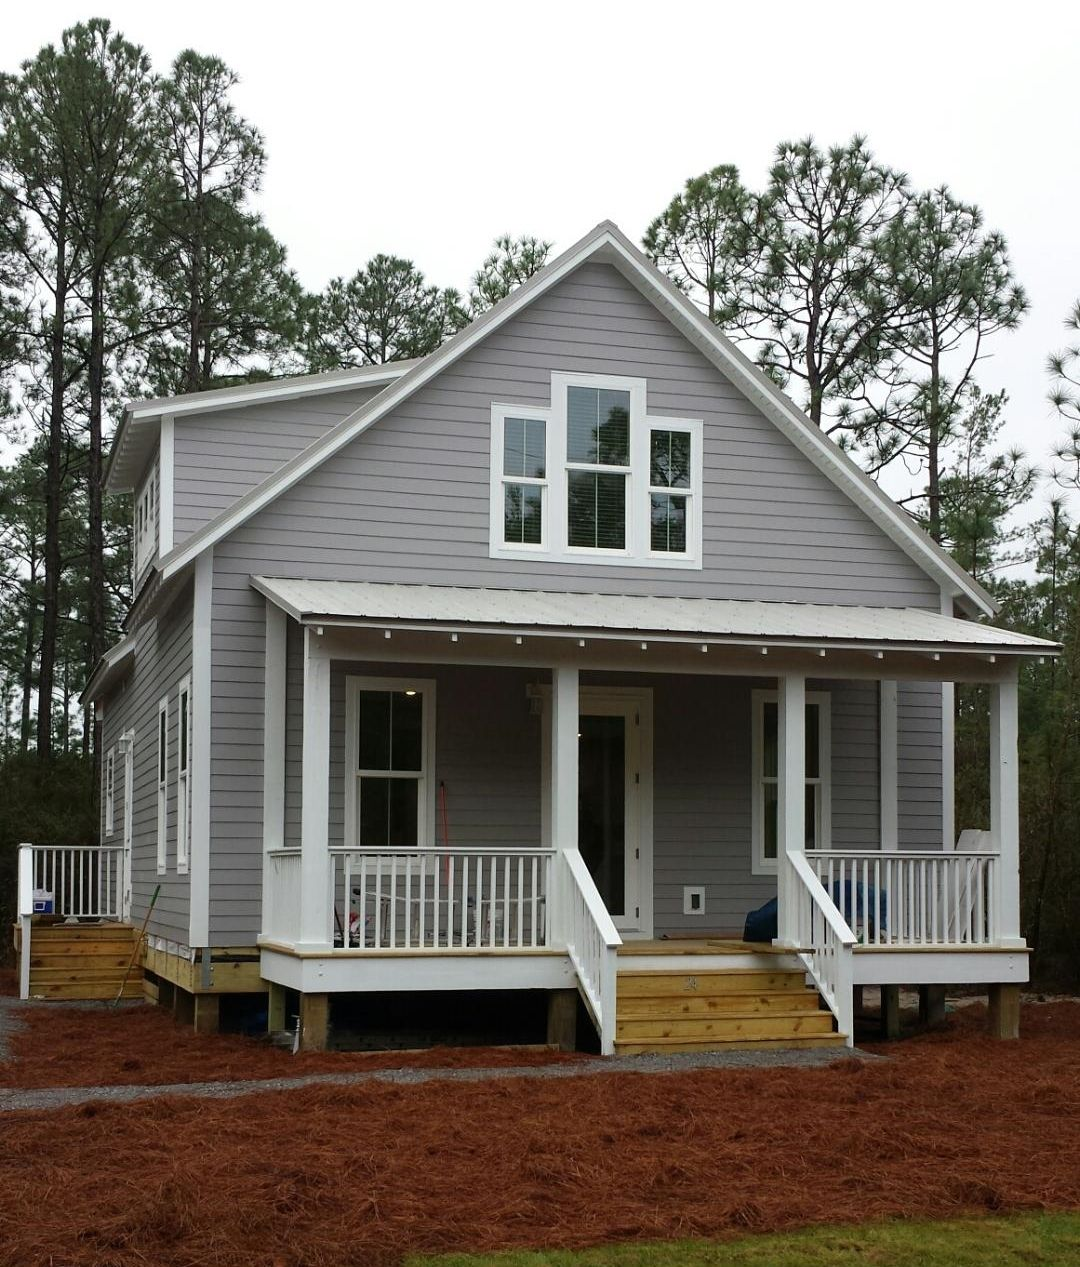 Greenbriar modular home santa rosa beach florida custom for Modular built homes